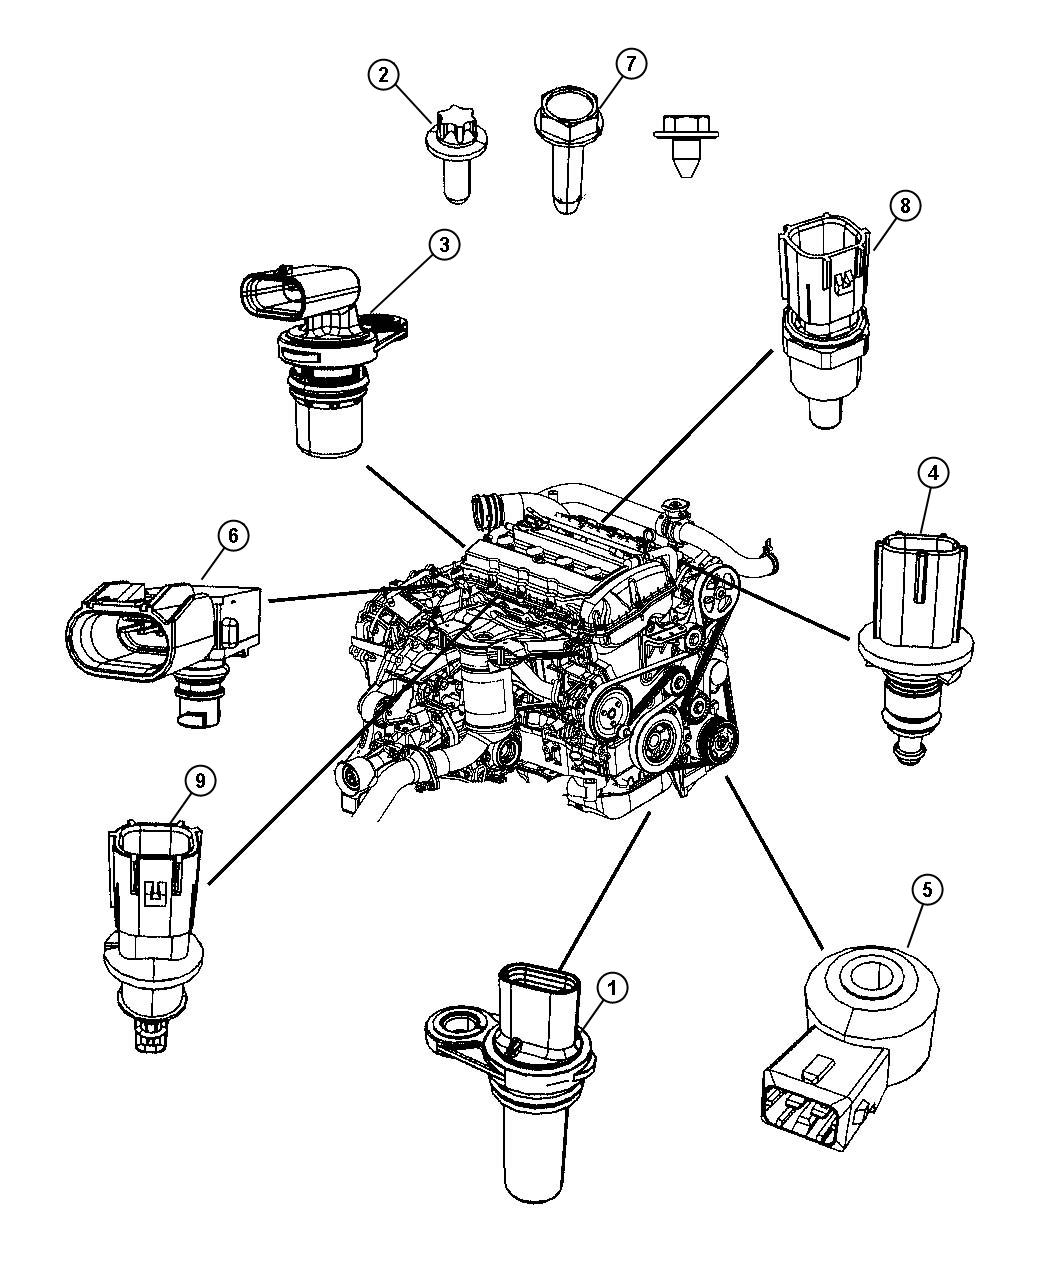 Quad 4 Engine Diagram | Wiring Diagram  Diagram Jeep Wiring Oil Pressure Sensor on 99 jeep 4.0 cam sensor, jeep 4.0 o2 sensor, ford 6.0 oil pressure sensor, 5.7 hemi oil pressure sensor, nissan titan oil pressure sensor, 2007 impala oil pressure sensor, dt466 map sensor, pt cruiser oil pressure sensor, dodge ram oil pressure sensor, jeep 4.0 intake air temperature sensor, jeep liberty oil pressure sending unit, jeep 4.0 camshaft sensor, 5.3 vortec oil pressure sensor, 2003 chevy silverado oil pressure sensor, changing oil pressure sensor, jeep oil pressure switch, chevy 350 oil pressure sensor, jeep 4.0 throttle sensor, jeep 4.0 fuel pressure regulator, jeep 4.7 engine diagram,